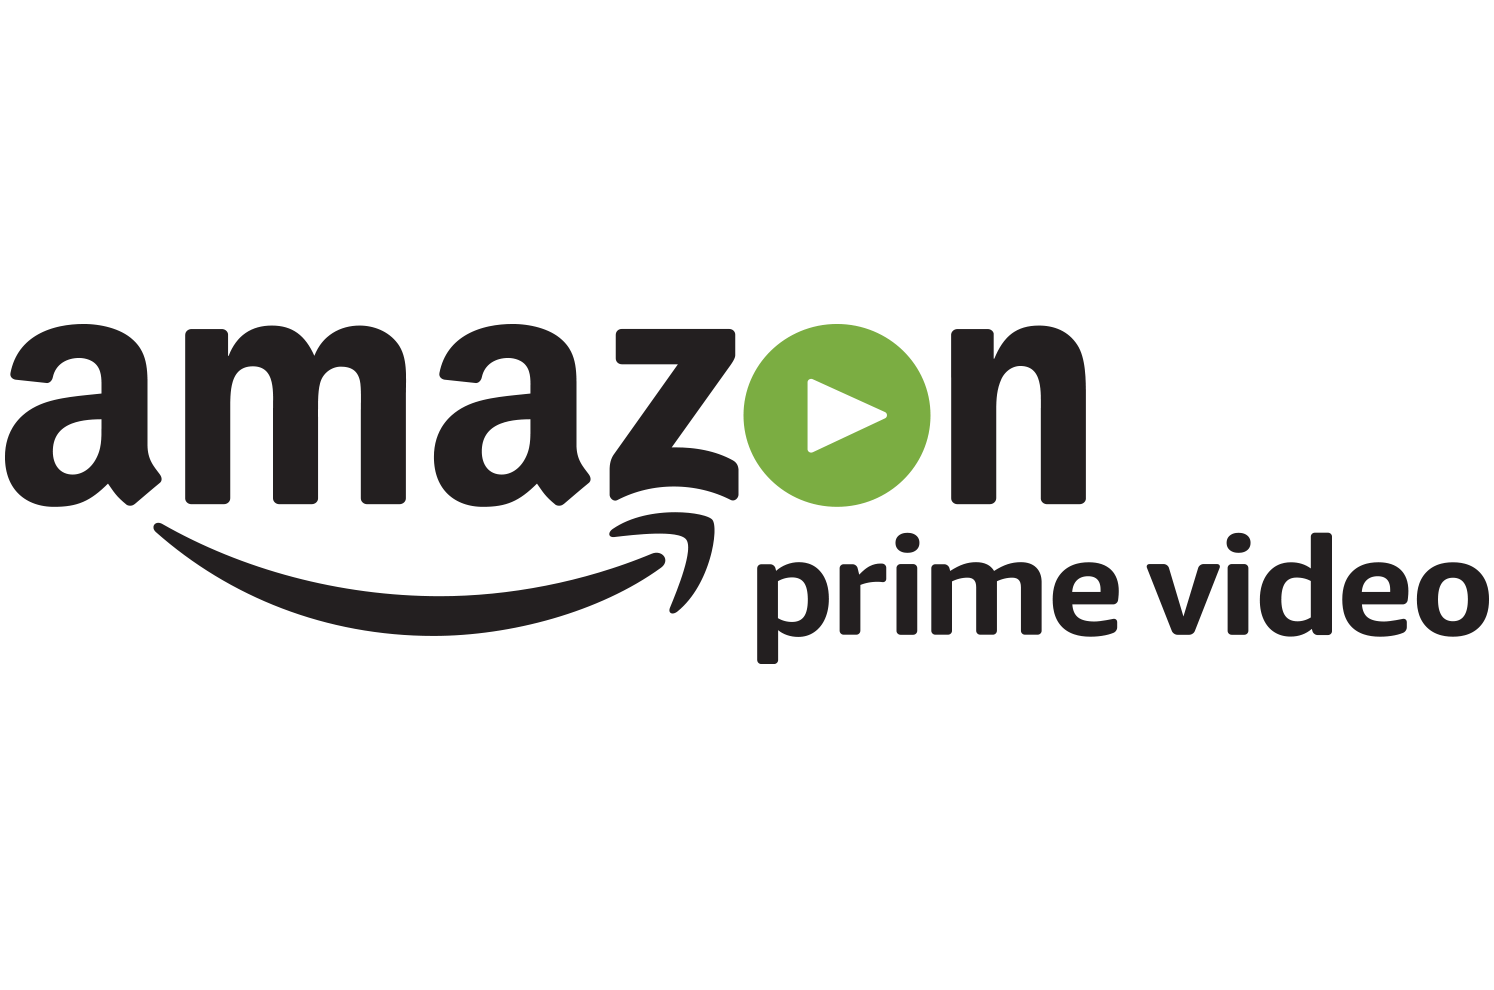 amazon_prime.png